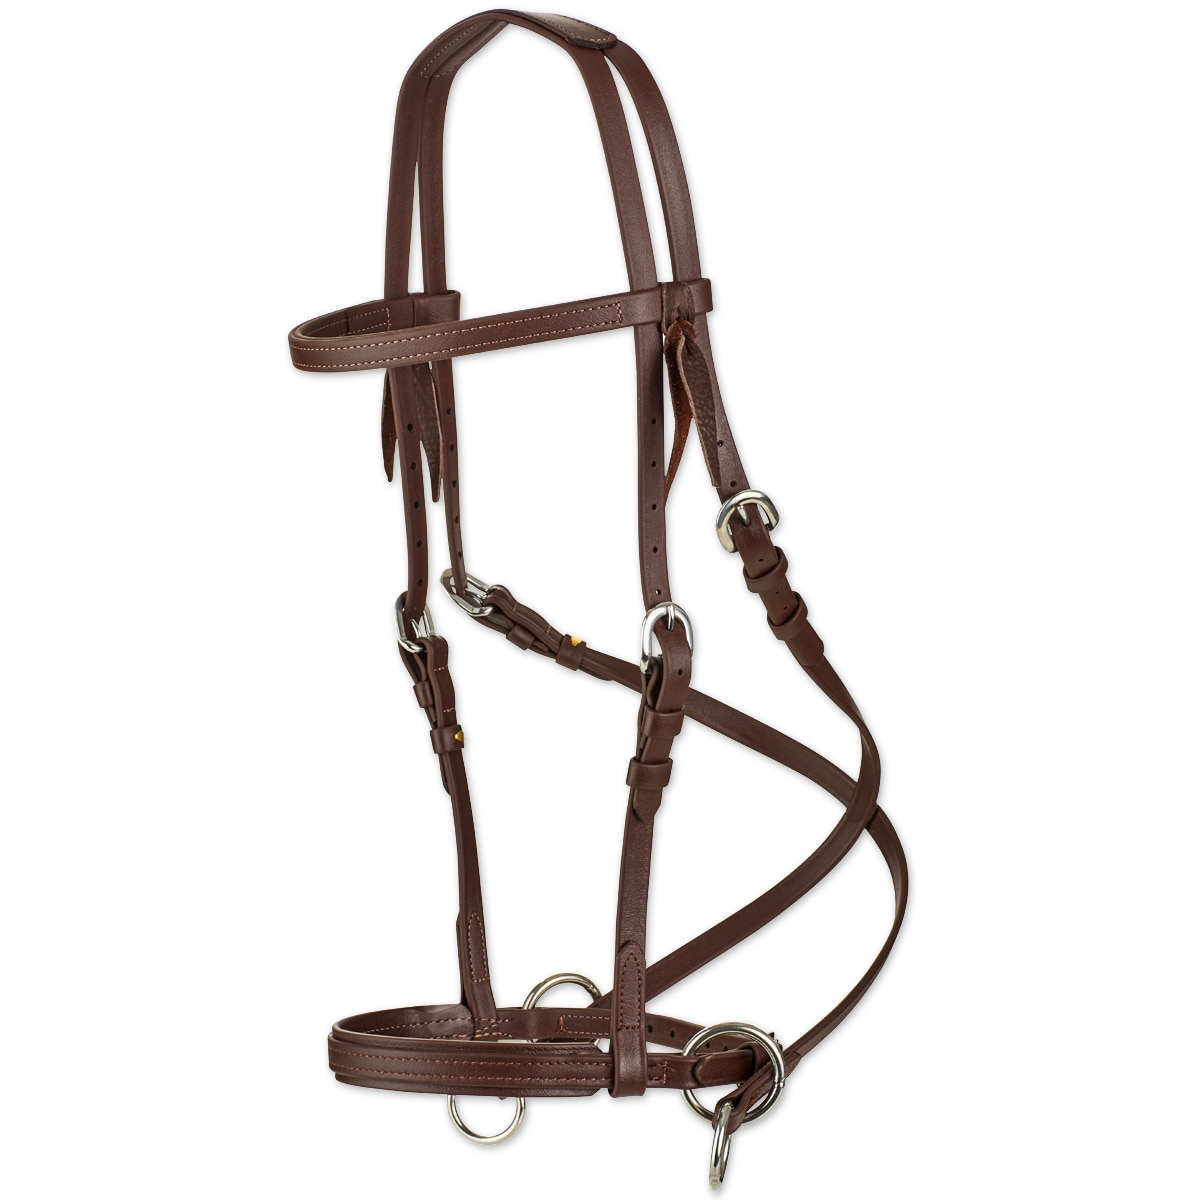 Dr. Cook's Beta Western Bitless Bridle